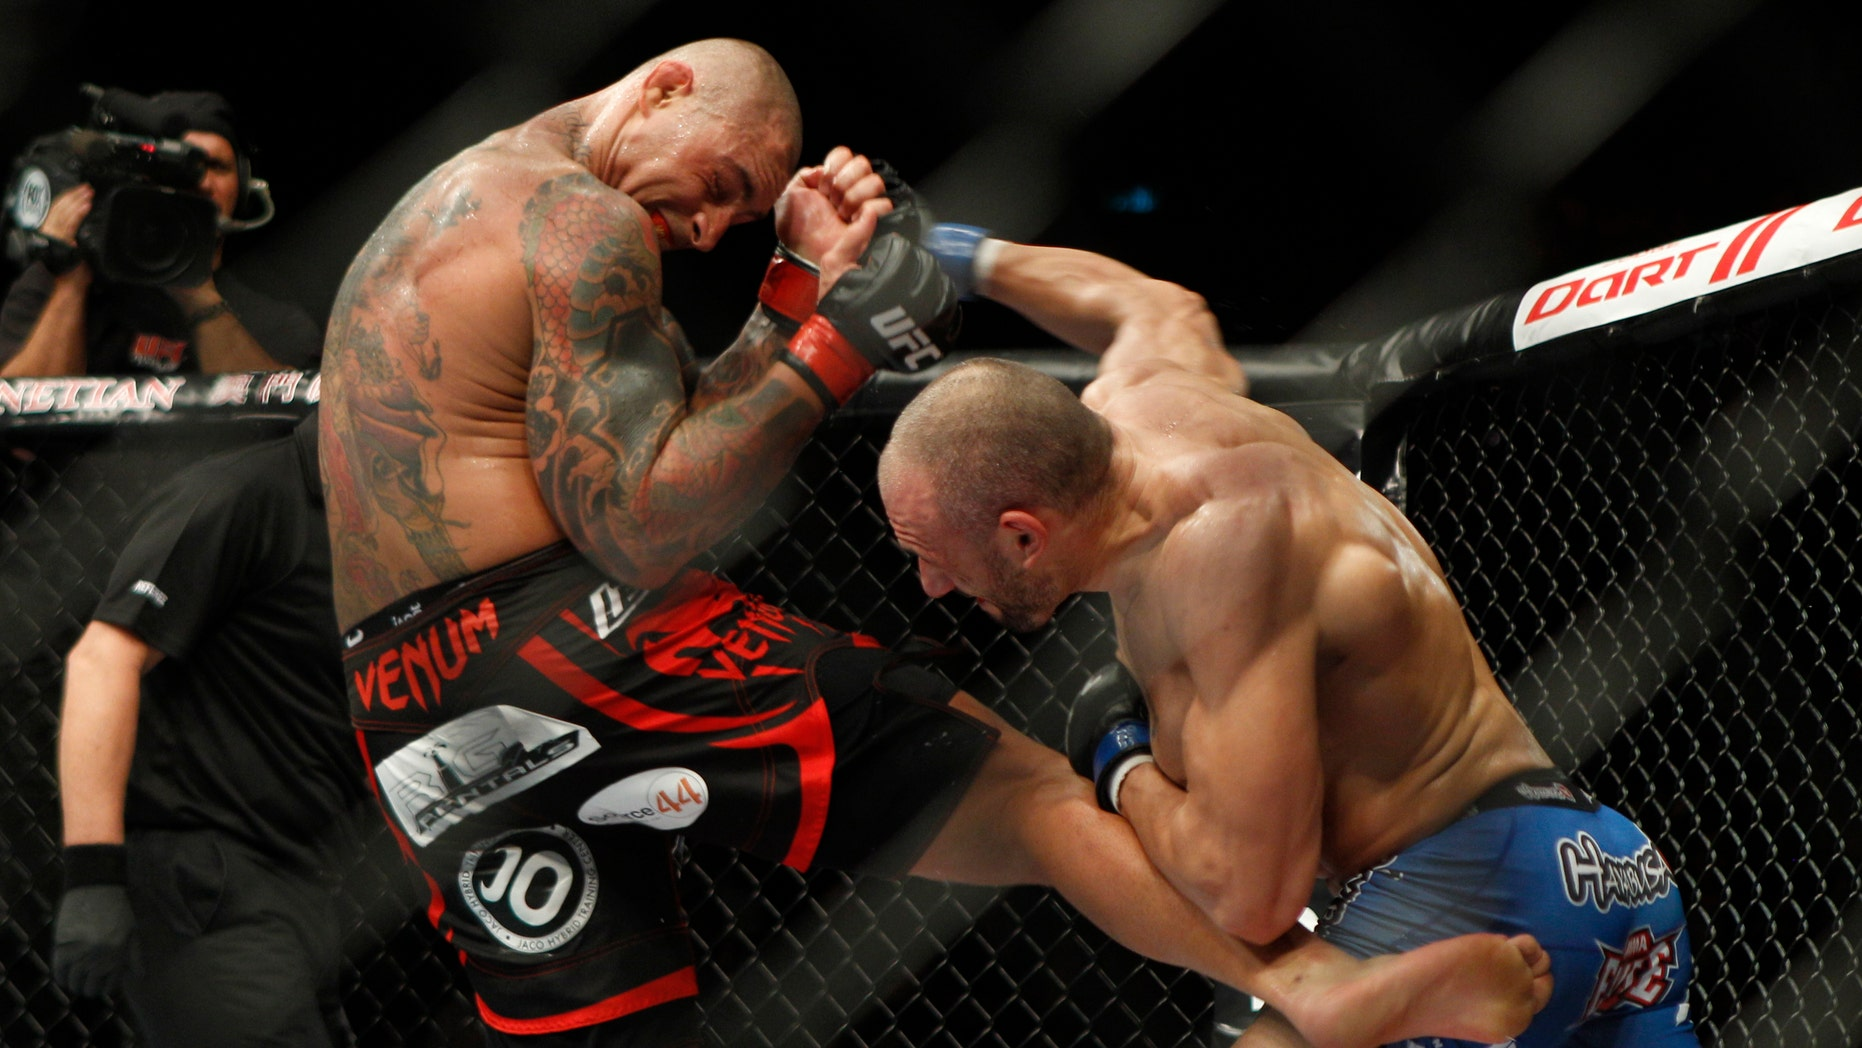 Nov. 10, 2012: In a file photo, Thiago Silva of Boca Raton, Fla., left, fights with Stanislav Nedkov of Bulgaria during the Light Heavyweight match of the Ultimate Fighting Championship UFC  in Macau.